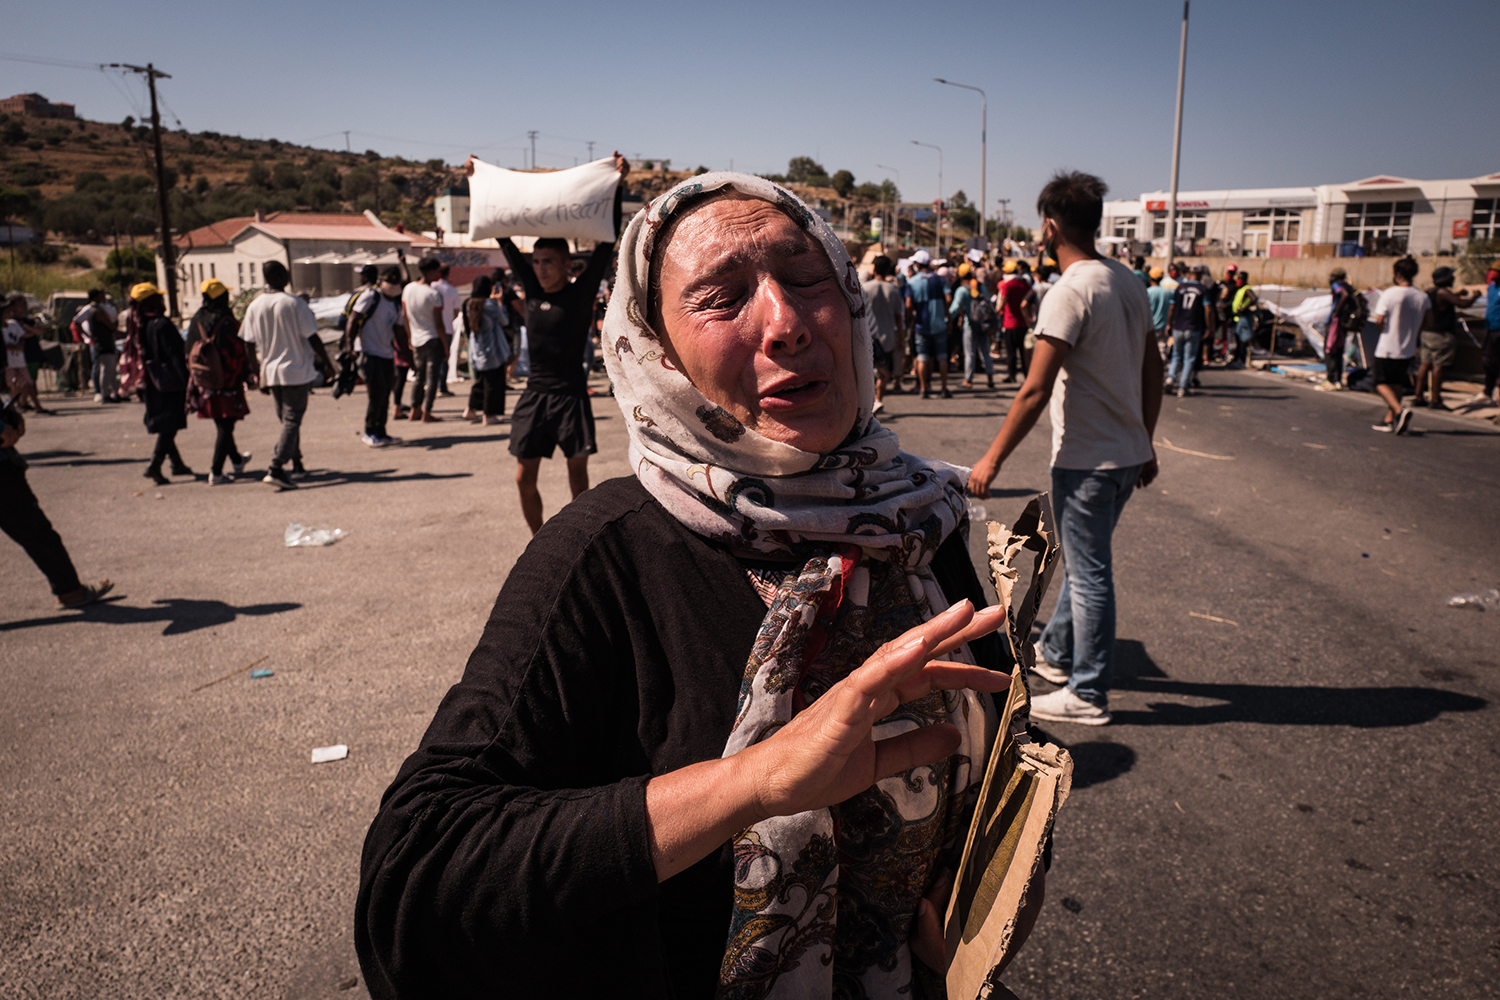 A refugee woman cries during a protest in the main street connecting Moria to Mytilene, Lesbos, on Sept. 12, reacting to plans to move refugees to a new camp.